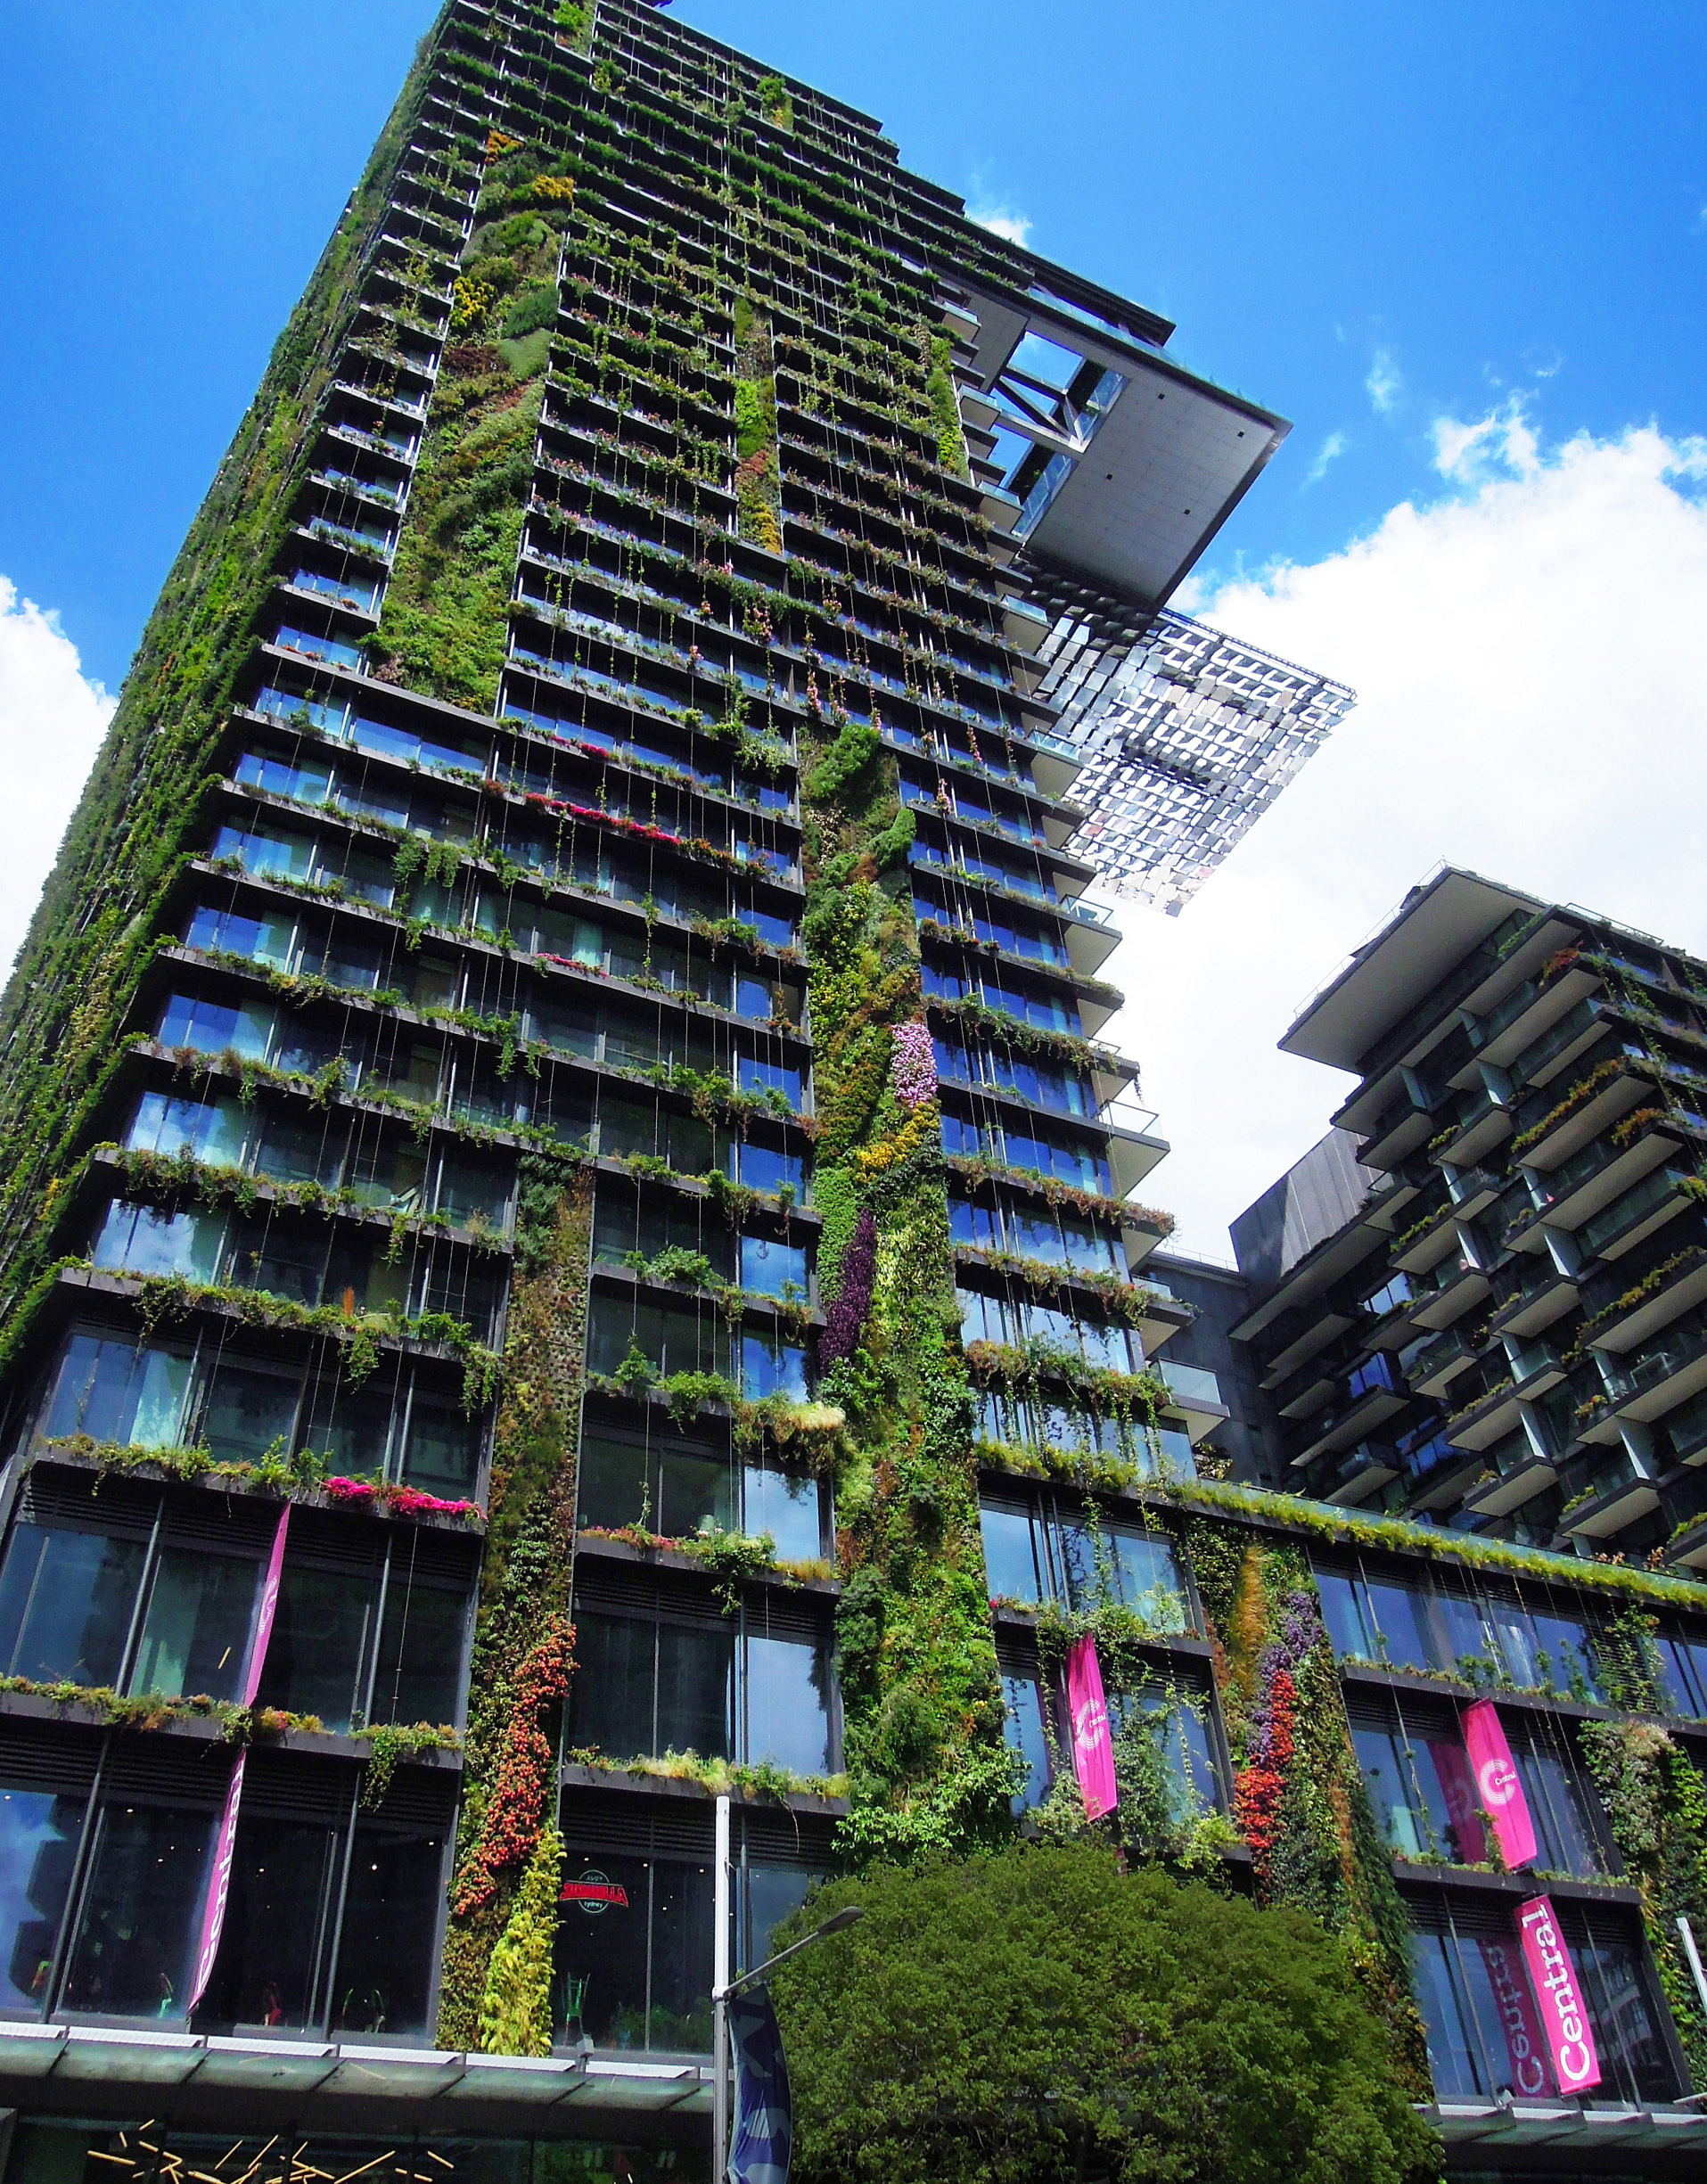 Patrick Blanc Creator Of Vertical Gardens Says Many Get It Wrong